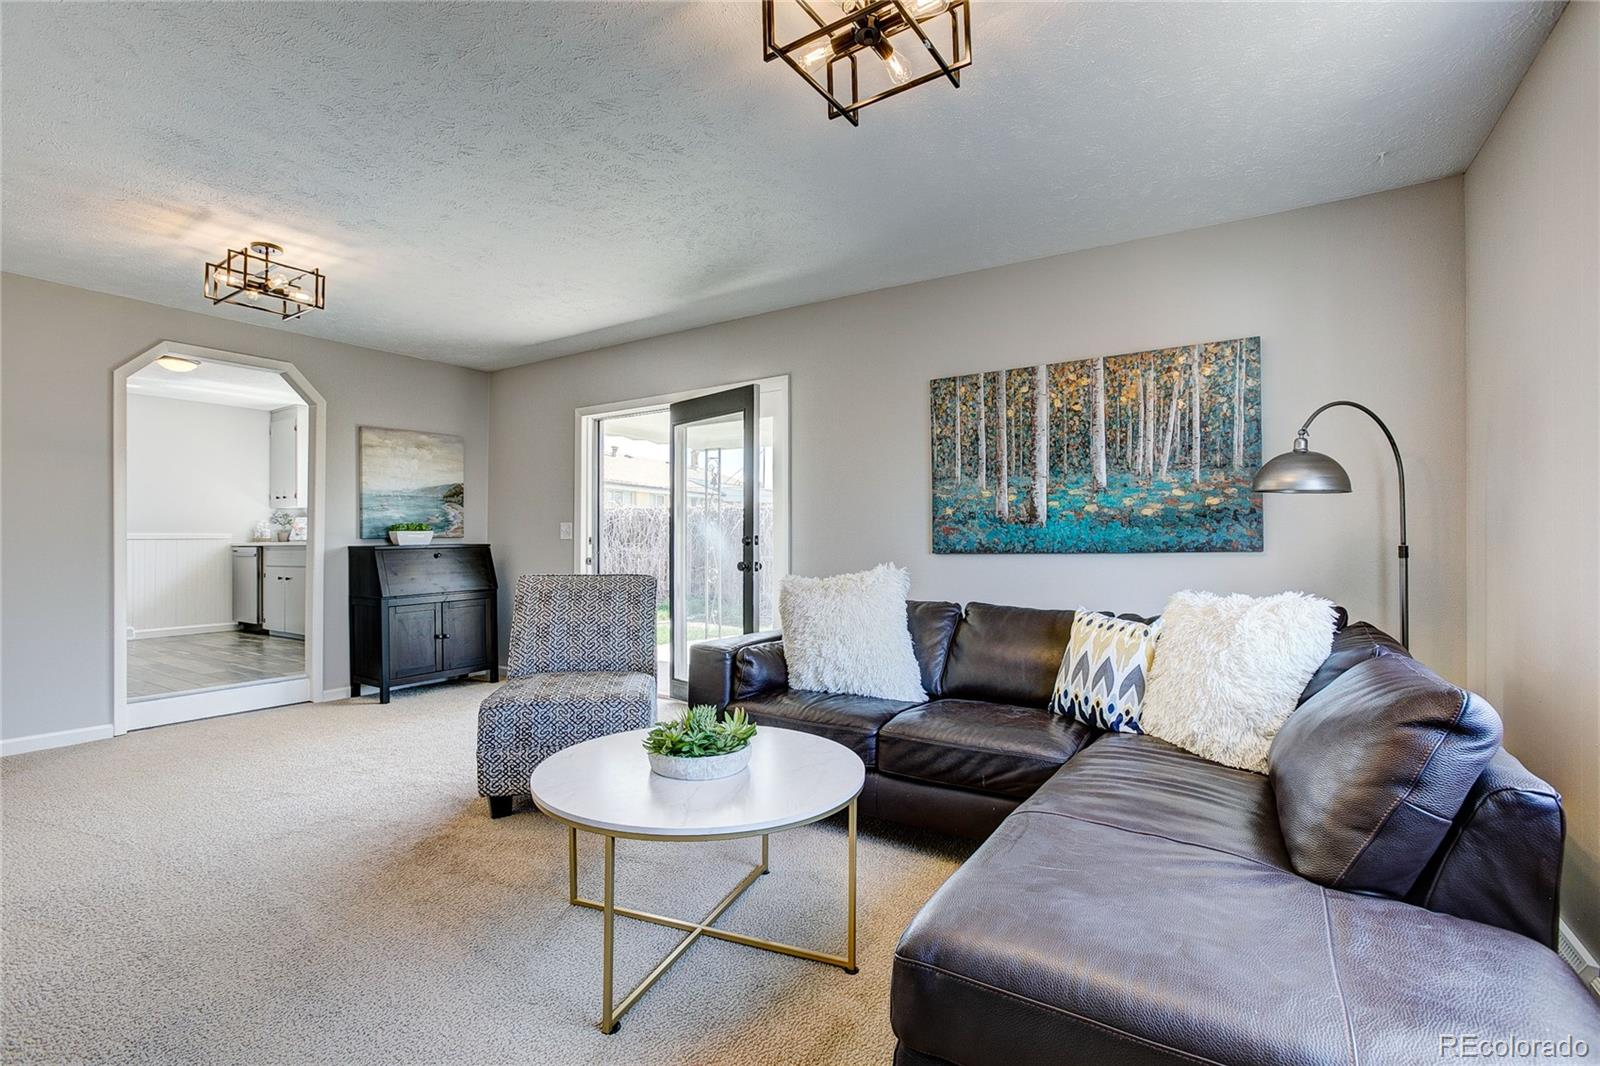 MLS# 9710462 - 12 - 1250 W 7th Ave Dr, Broomfield, CO 80020